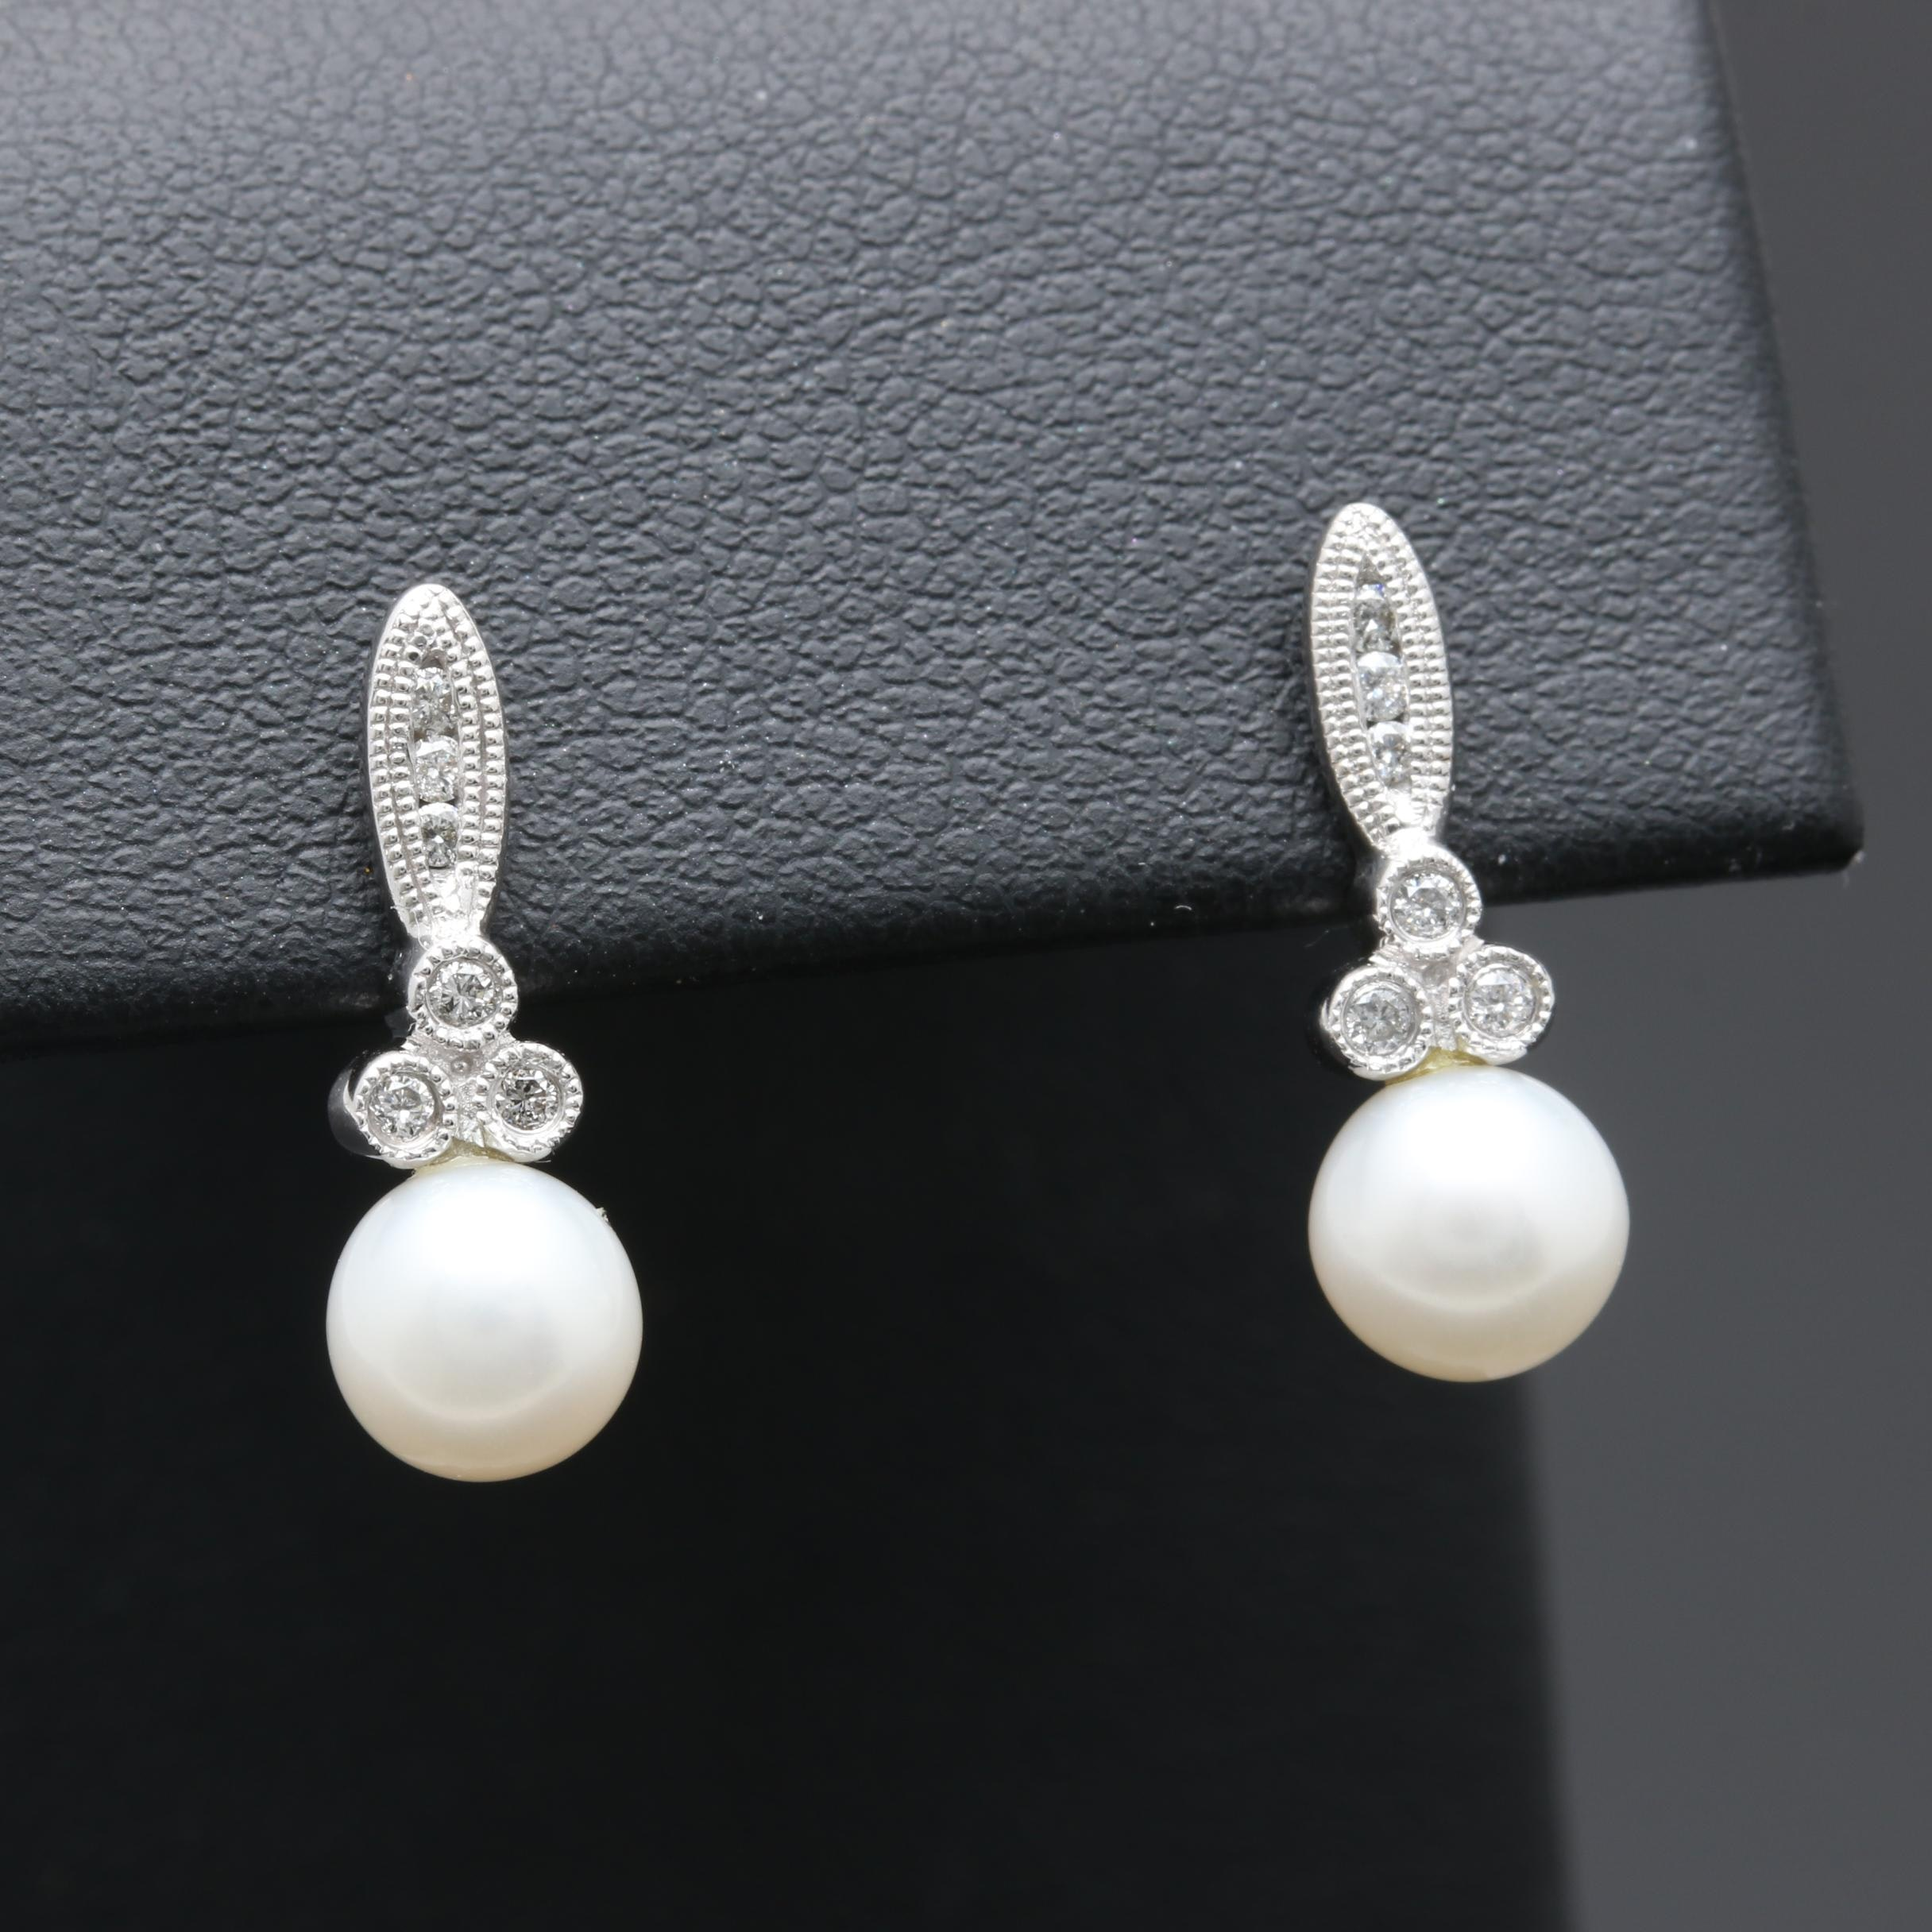 10K White Gold Cultured Pearl and Diamond Drop Earrings with 14K Gold Accents